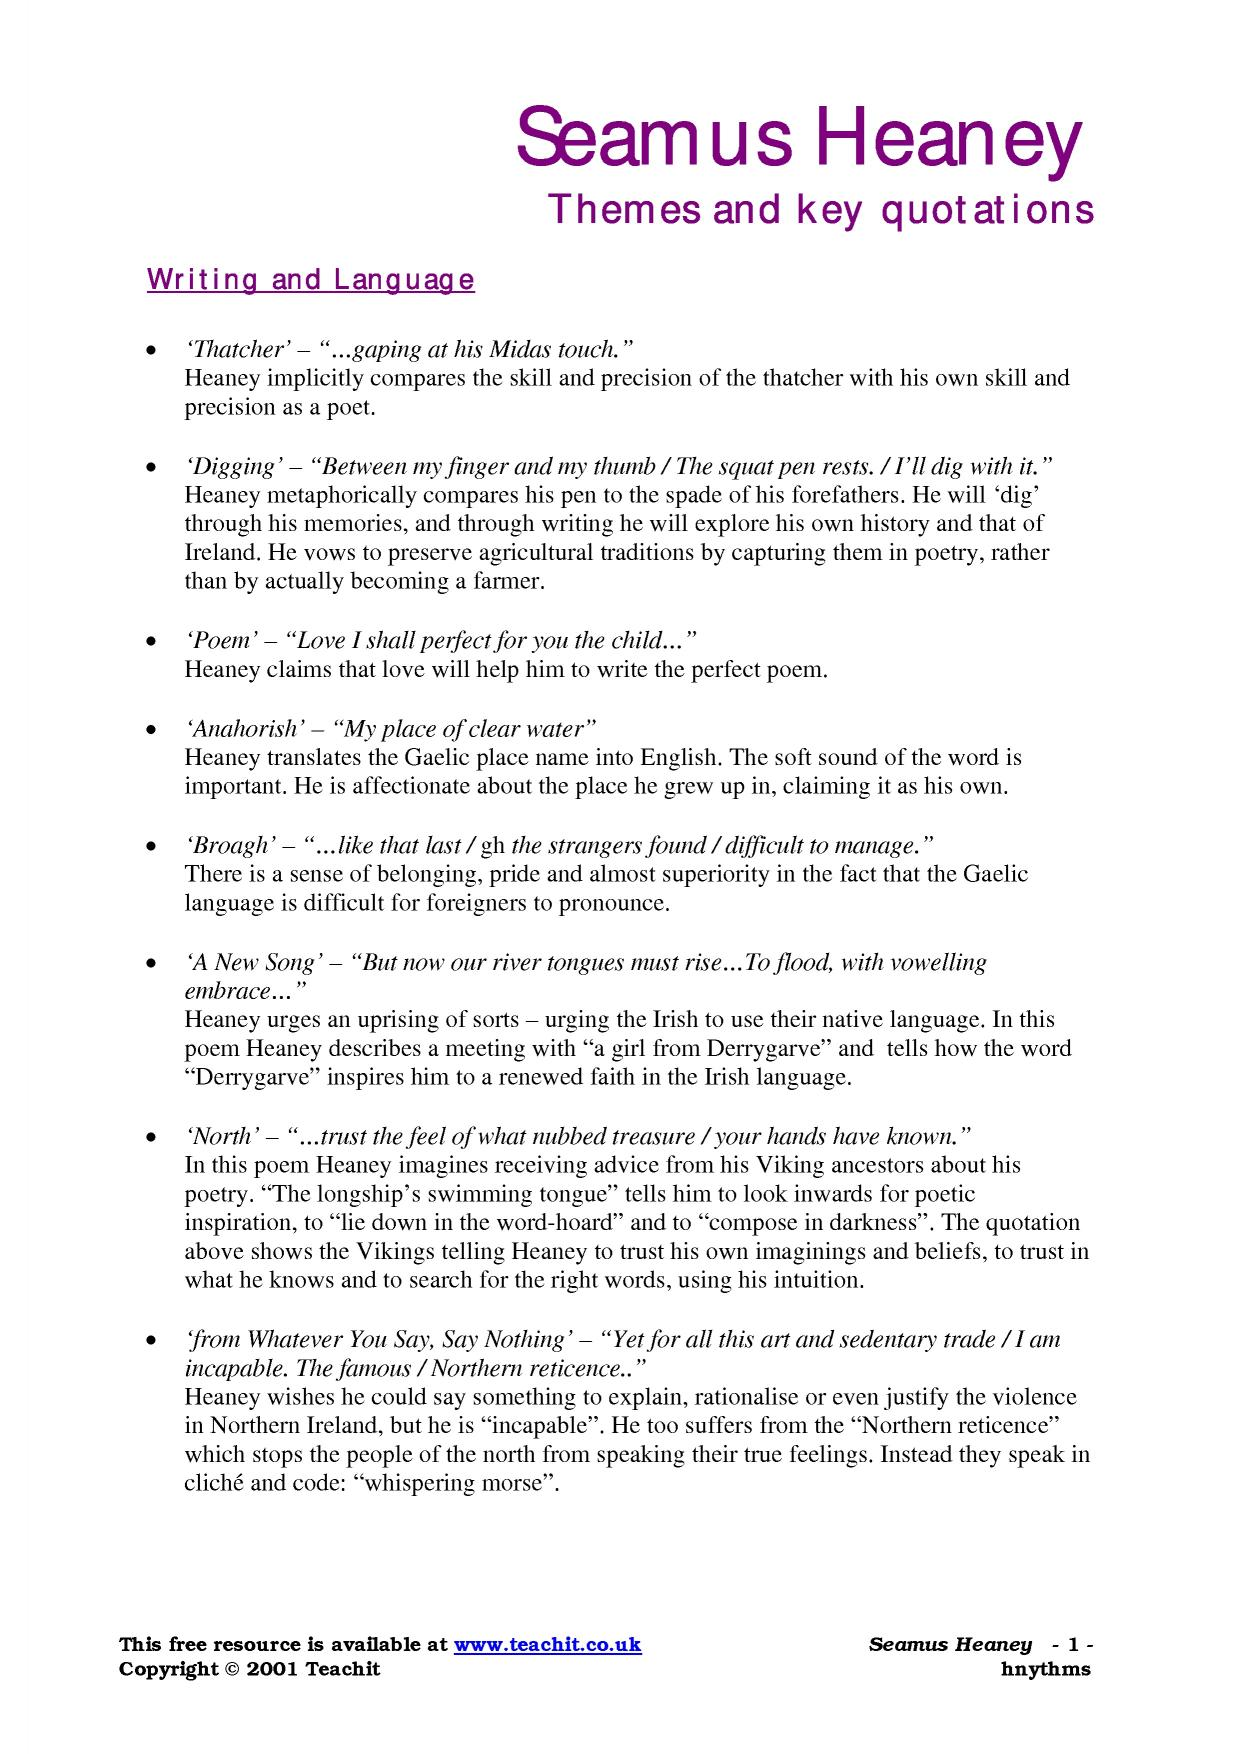 seamus heaney comparative essay Seamus heaney essay  this essay i will be comparing three seamus heaney poems we looked at in class these are called,  poetry comparative essay guide.